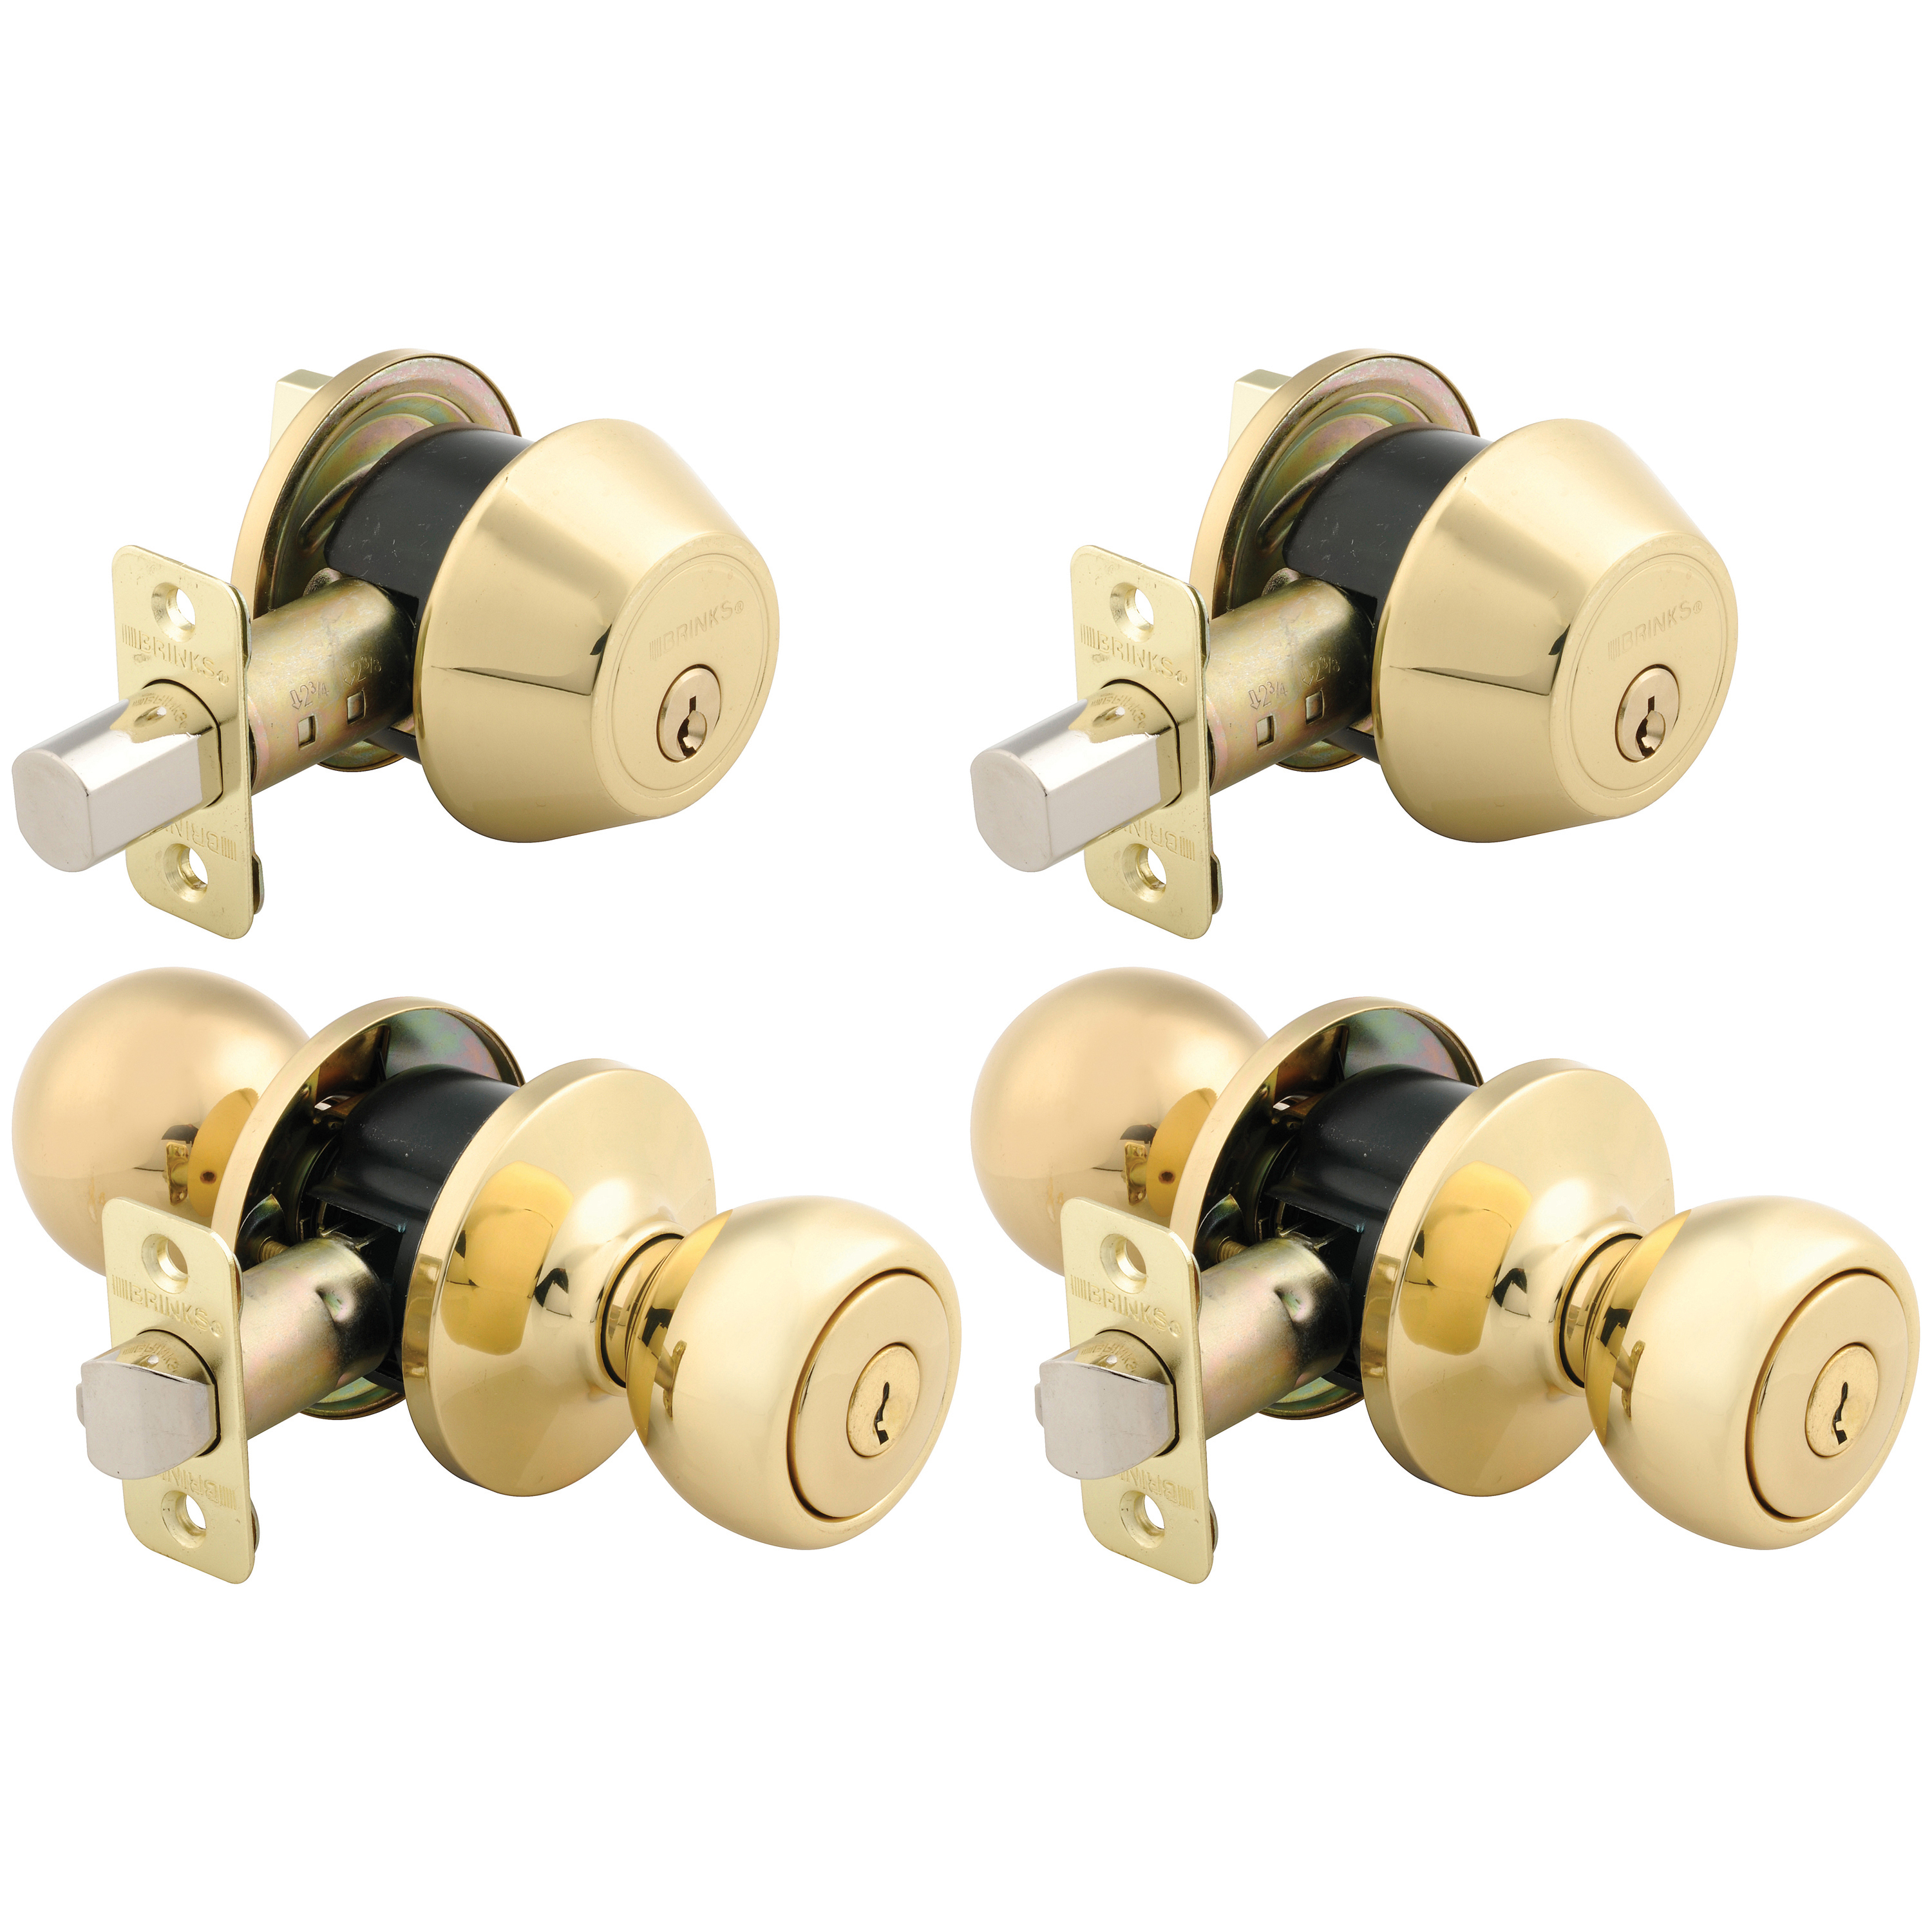 Brink's 2 Keyed Entry Door Knob And 2 Deadbolt Combo Pack, Polished Brass